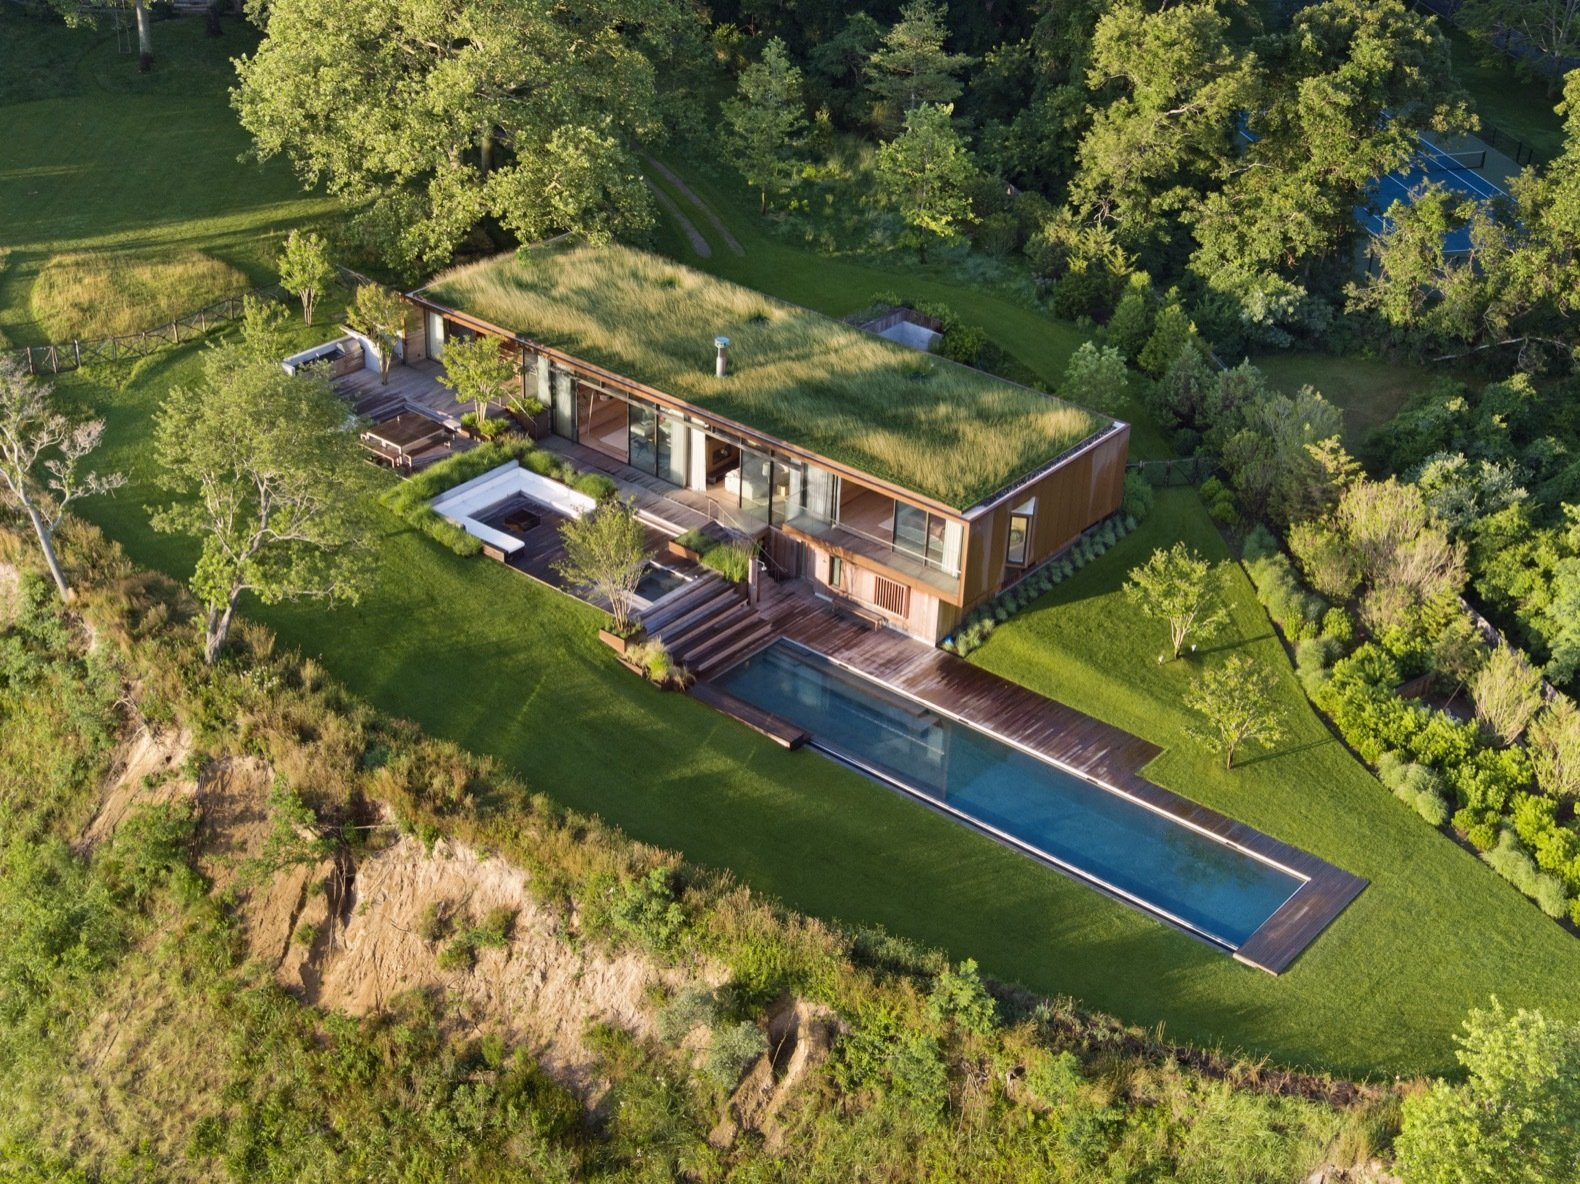 green roof example image